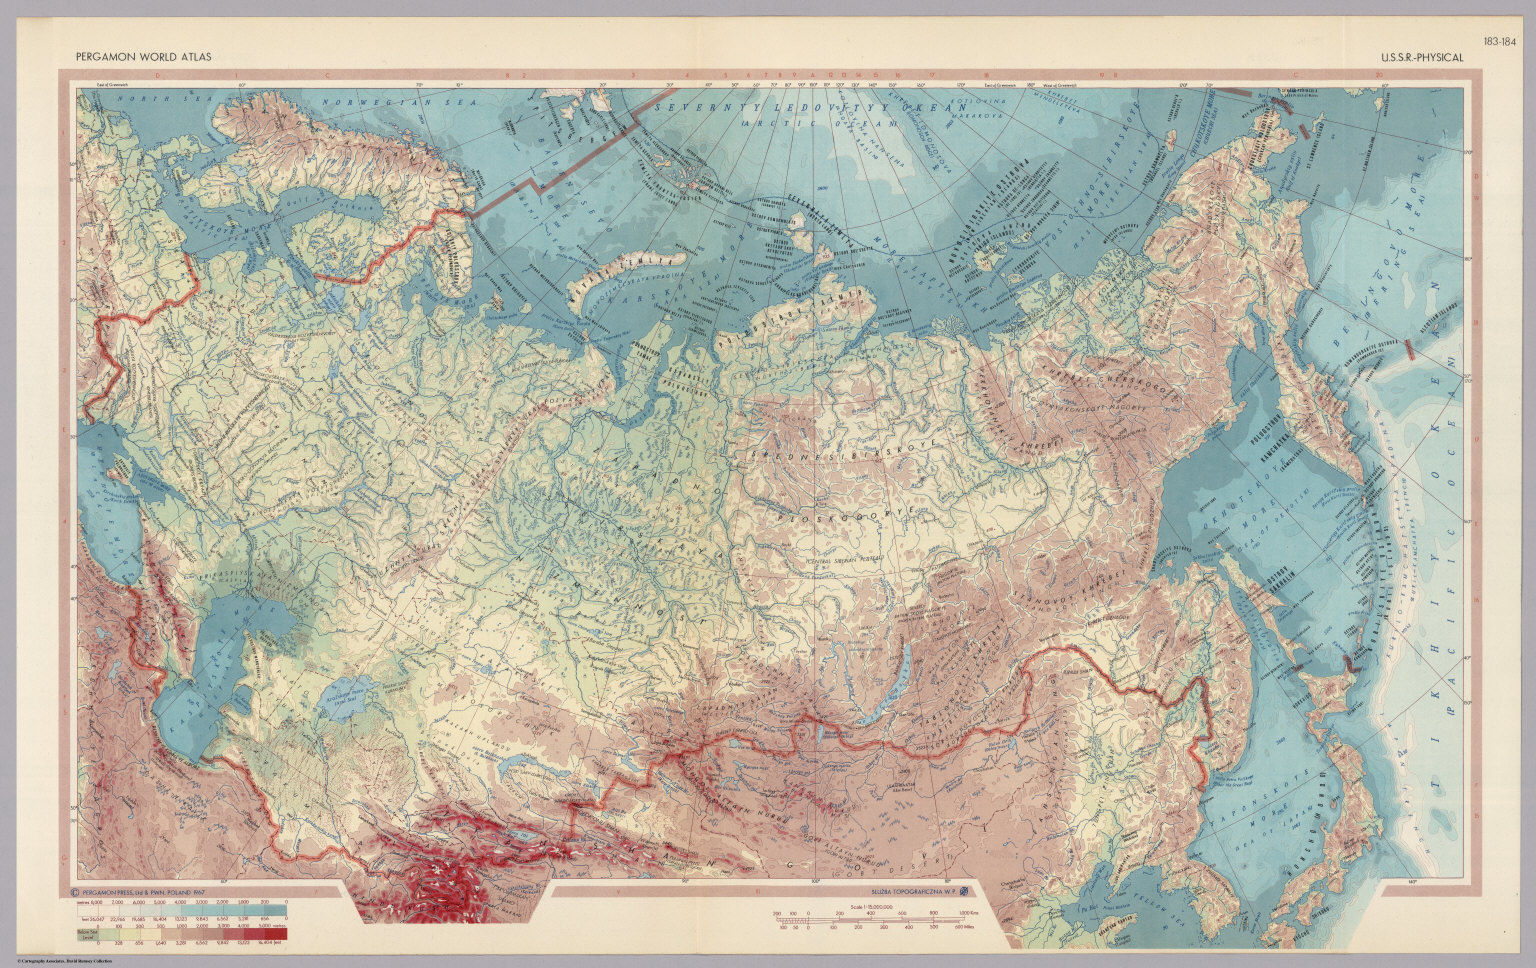 Ussr physical pergamon world atlas david rumsey ussr physical pergamon world atlas gumiabroncs